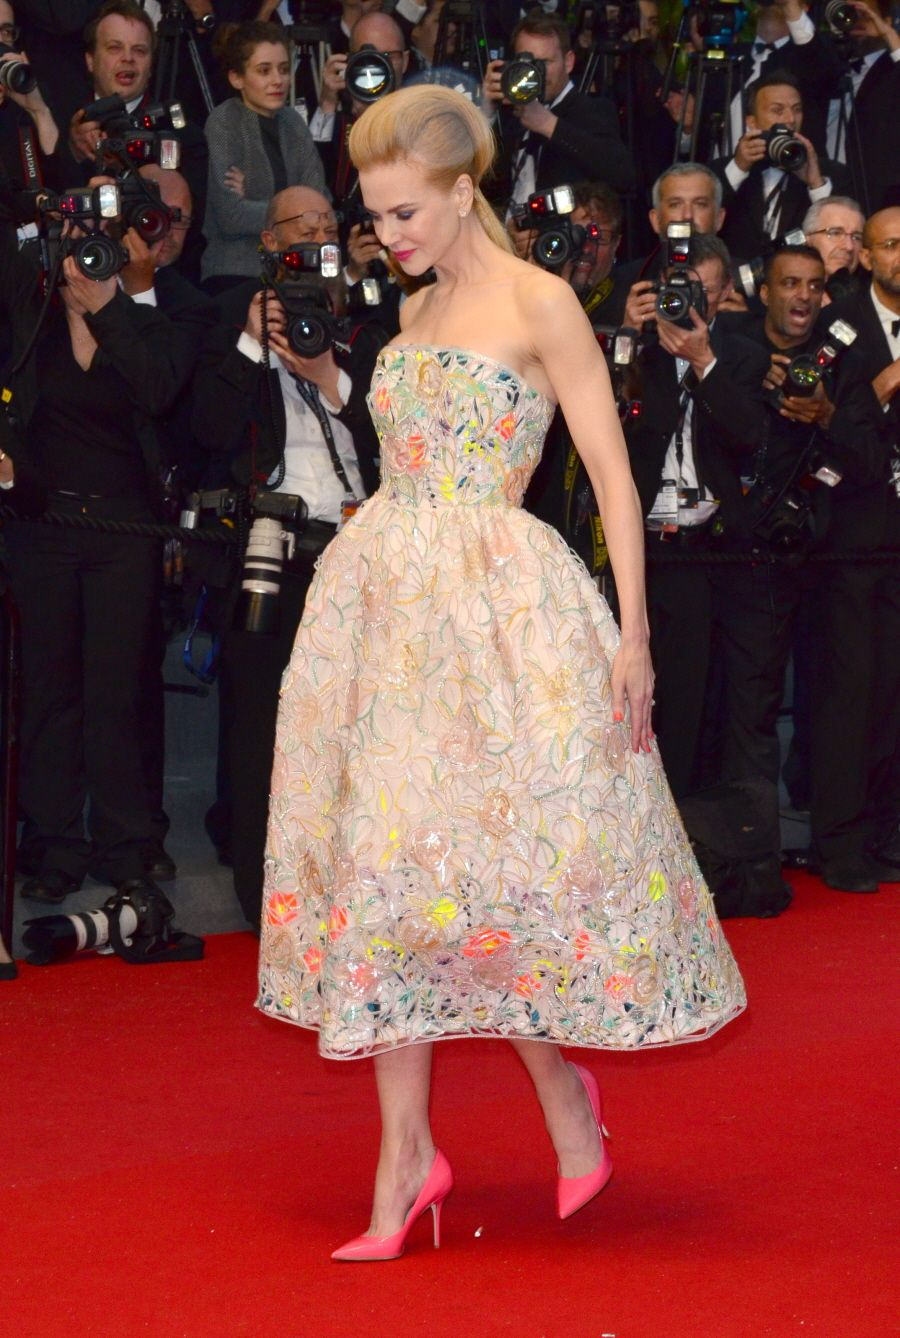 dior gowns | Cannes 2013 Red Carpet: Best Dressed & Biggest Trend